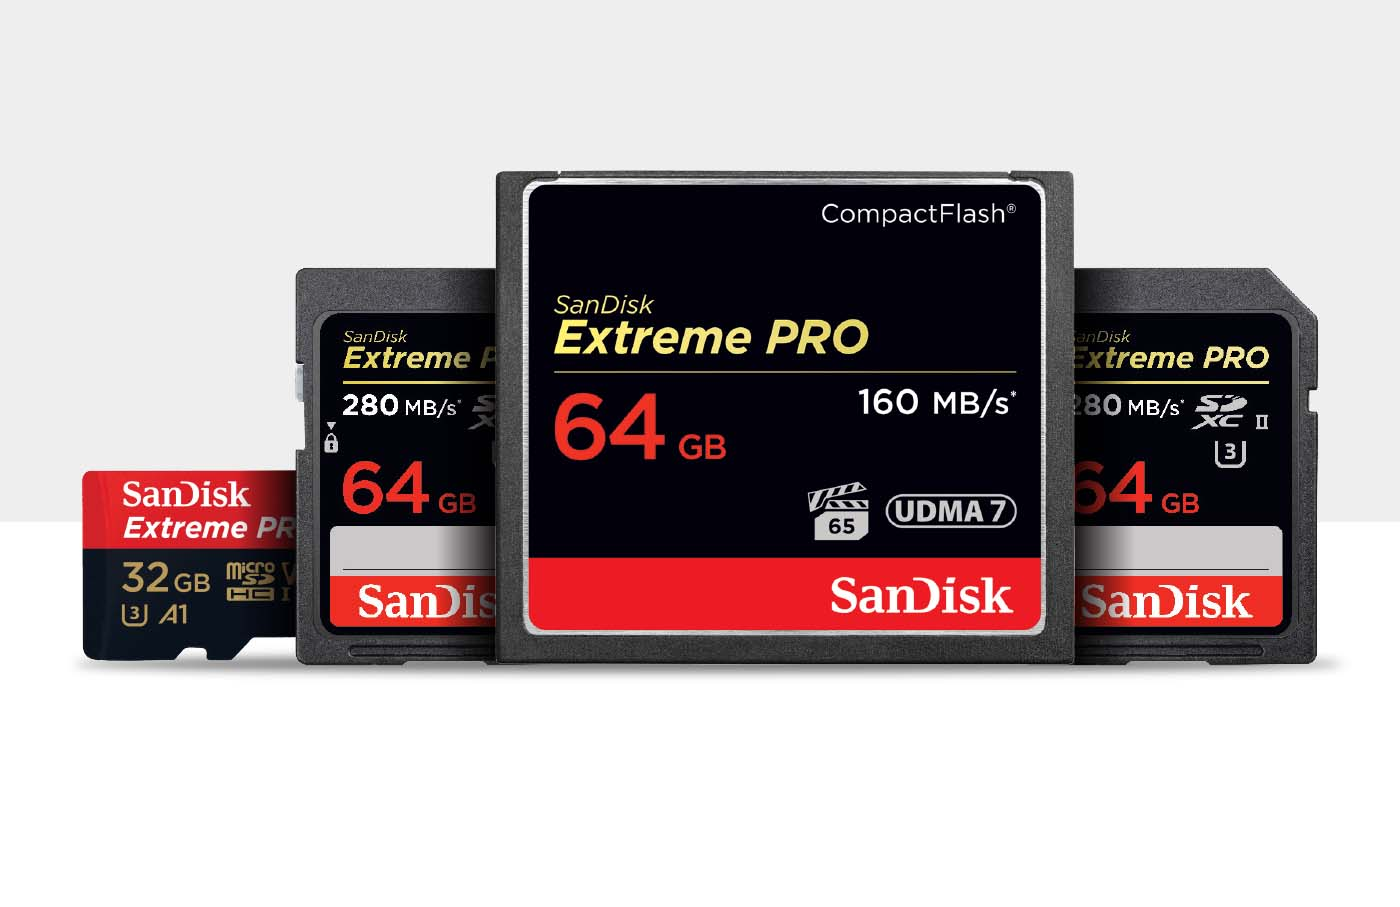 SD Cards, Micro SD Cards, Compact Flash Cards, C Fast Cards, SSD Drives, Flash Drives